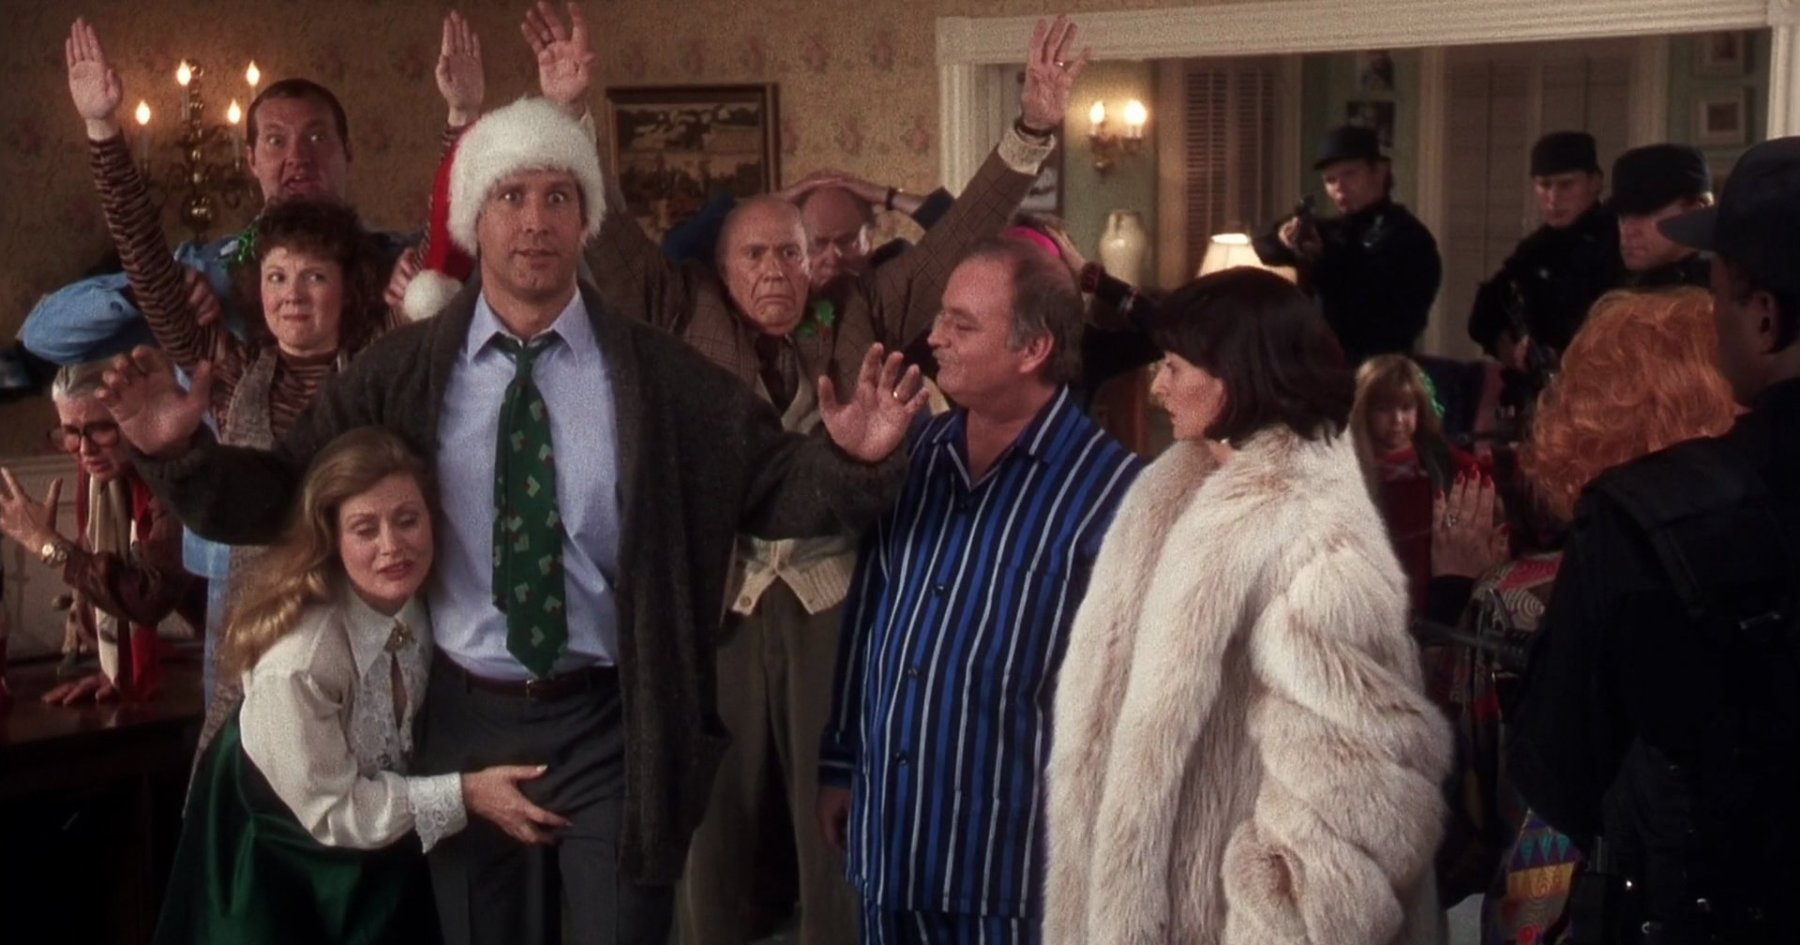 A 10-Step Guide to Navigating Christmas Eve Like a Pro